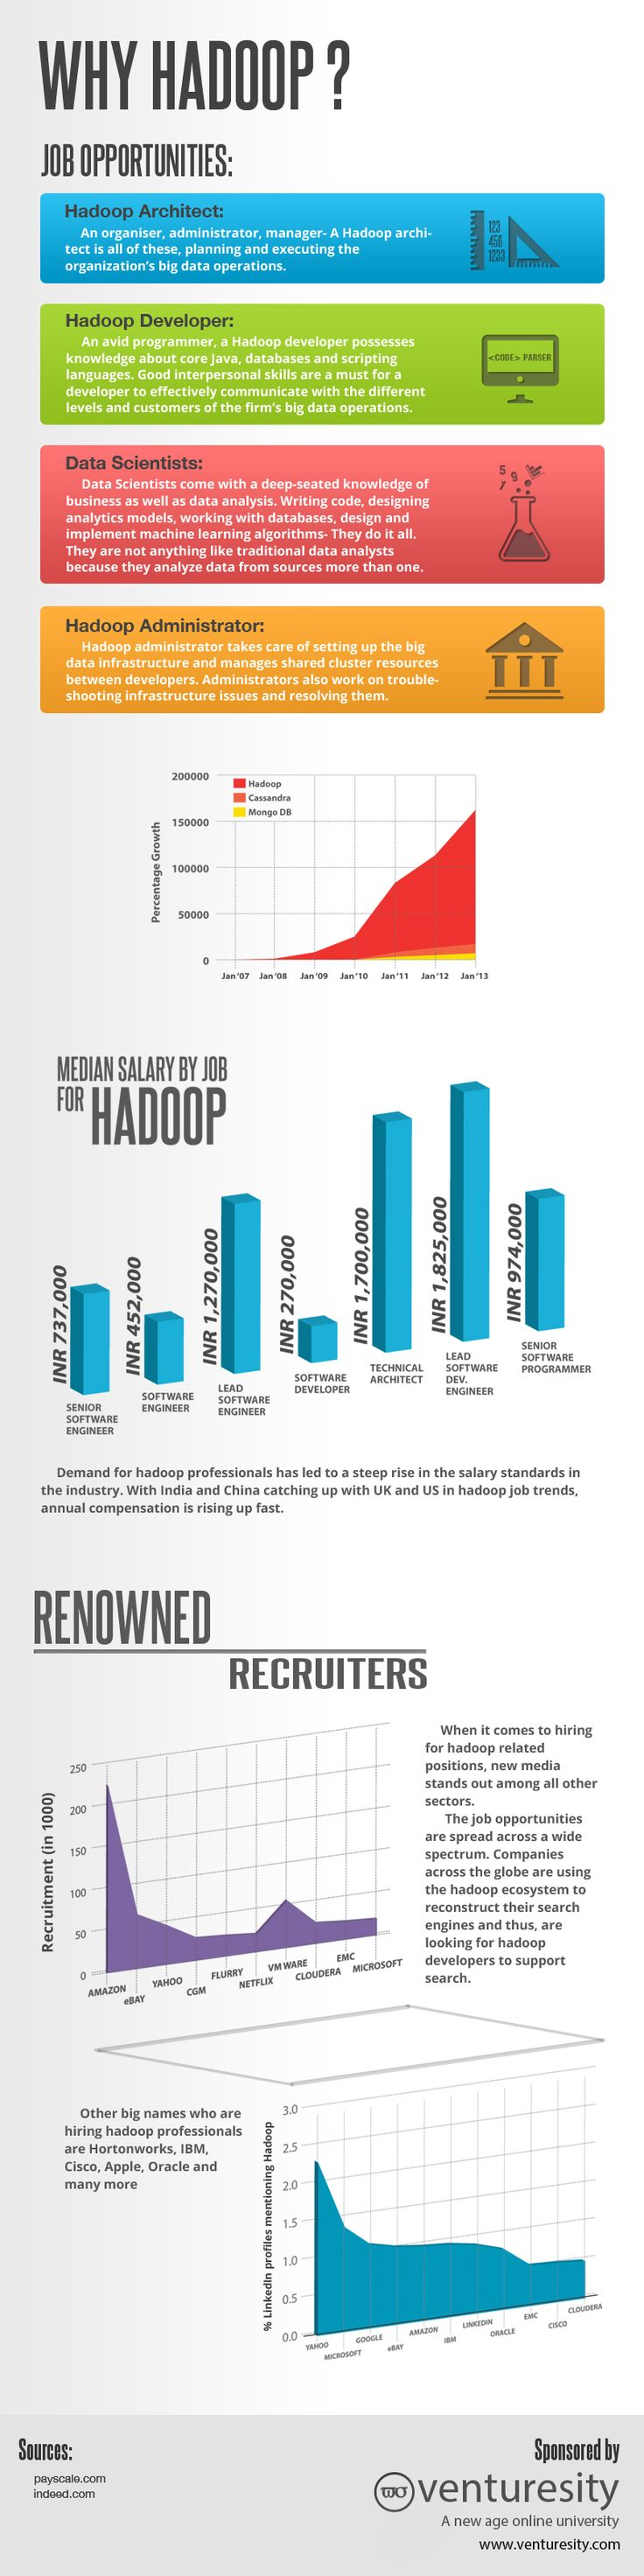 research across the globe shows that hadoop market is set to touch 139 billion by 2017